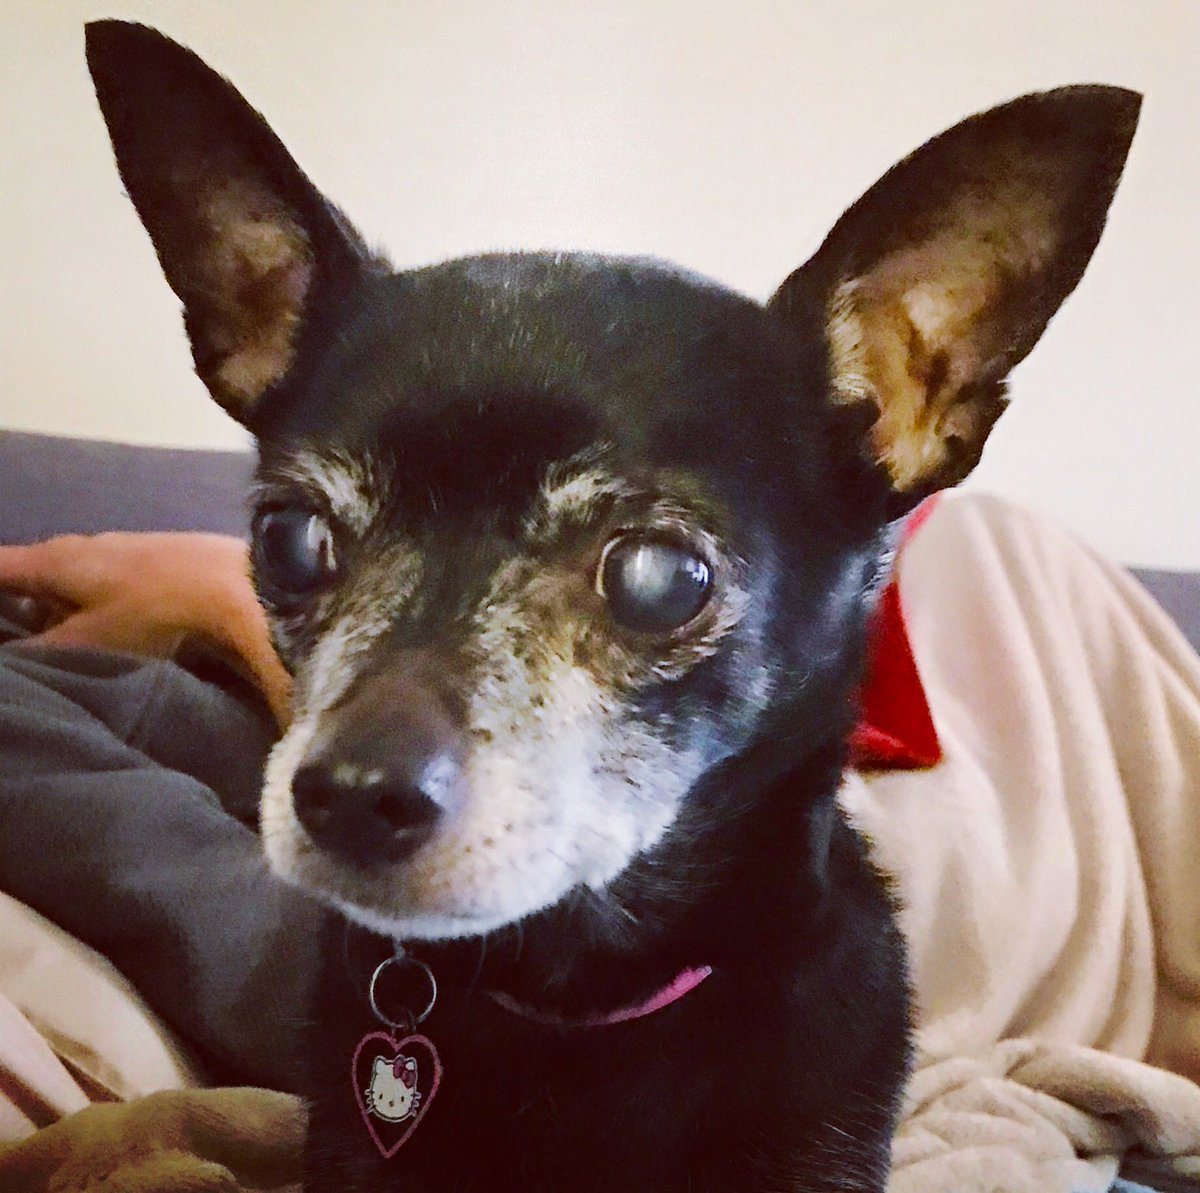 KATIE. Just rescued. 10 years old, 8 lb Chihuahua. Puppy Mill survivor  Super sweet, loves to snuggle &amp; sit in your lap &amp; gets along great with other dogs. Urgently Needs a foster while we find her a forever loving home  #chihuahua<br>http://pic.twitter.com/7eWaCNl9qe